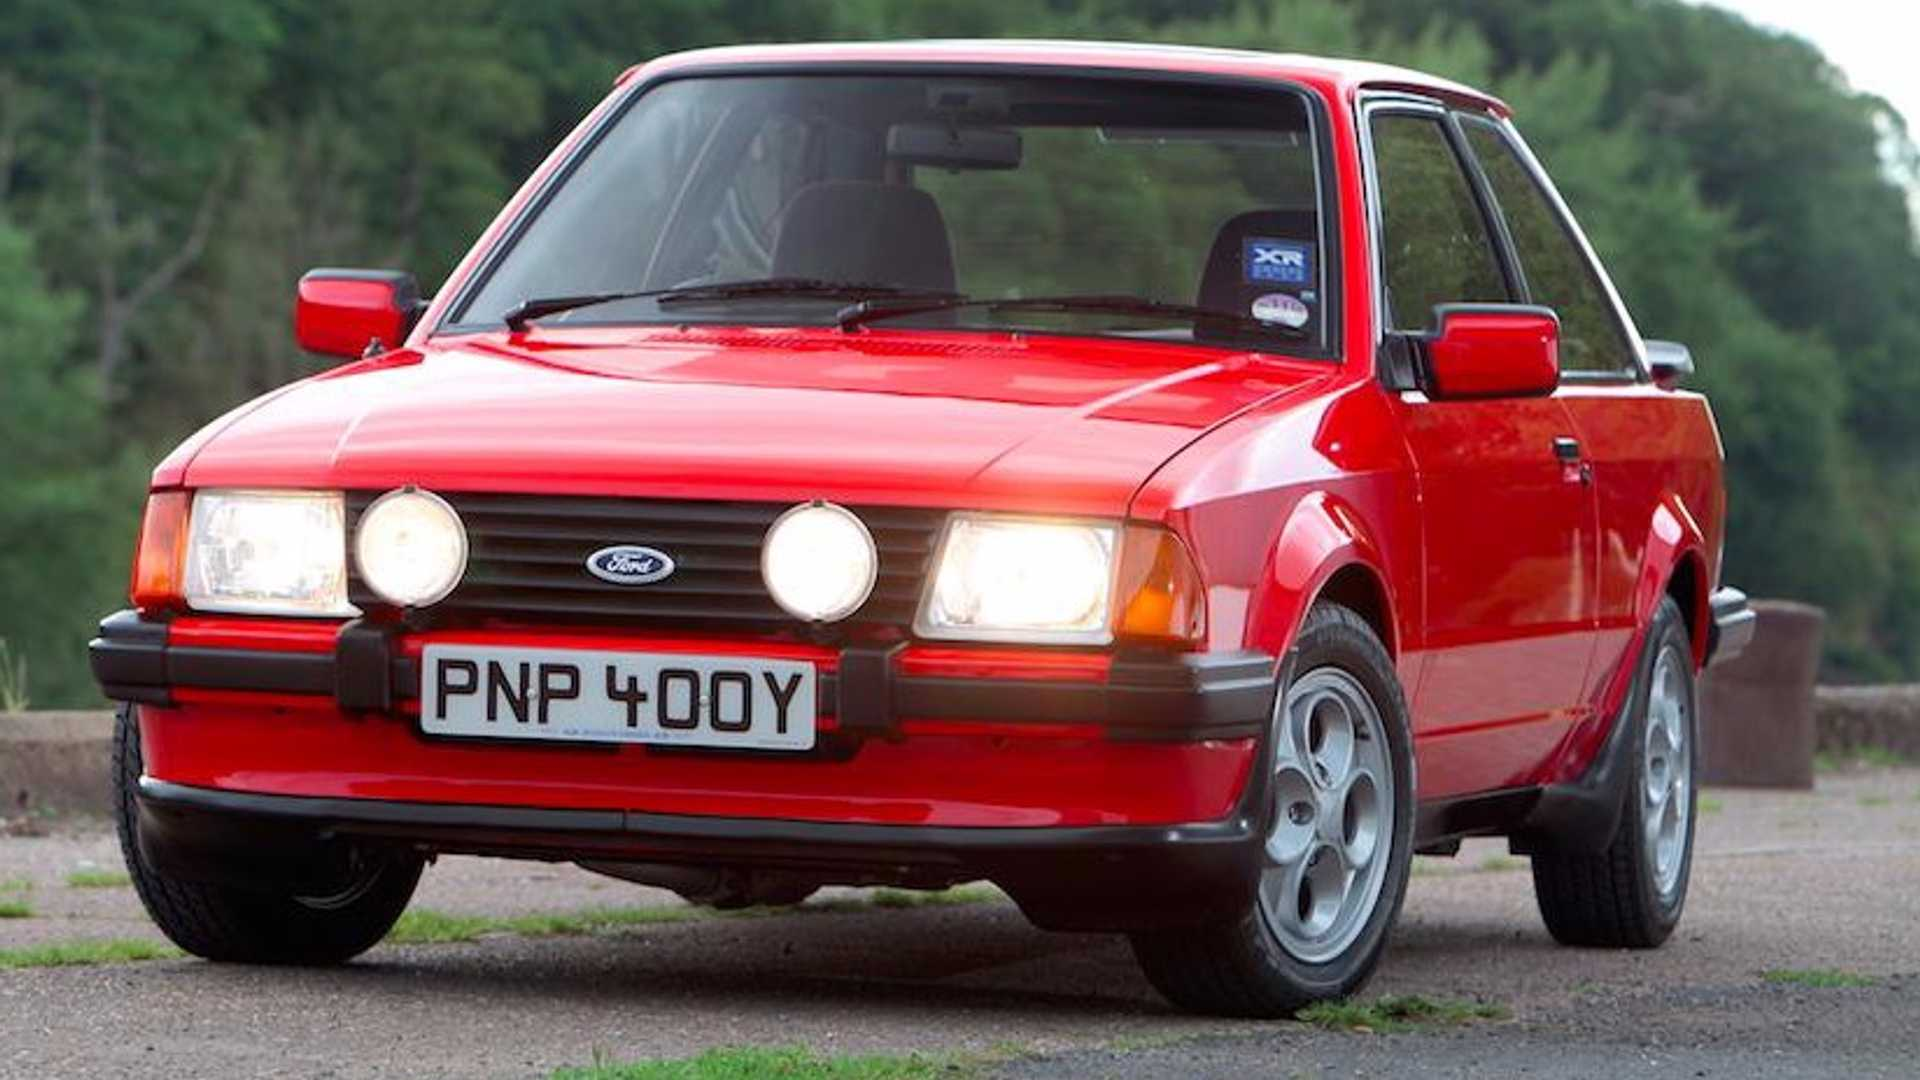 Ford Escort Mk3 XR3, XR3i & RS1600i Buying Guide | Motorious